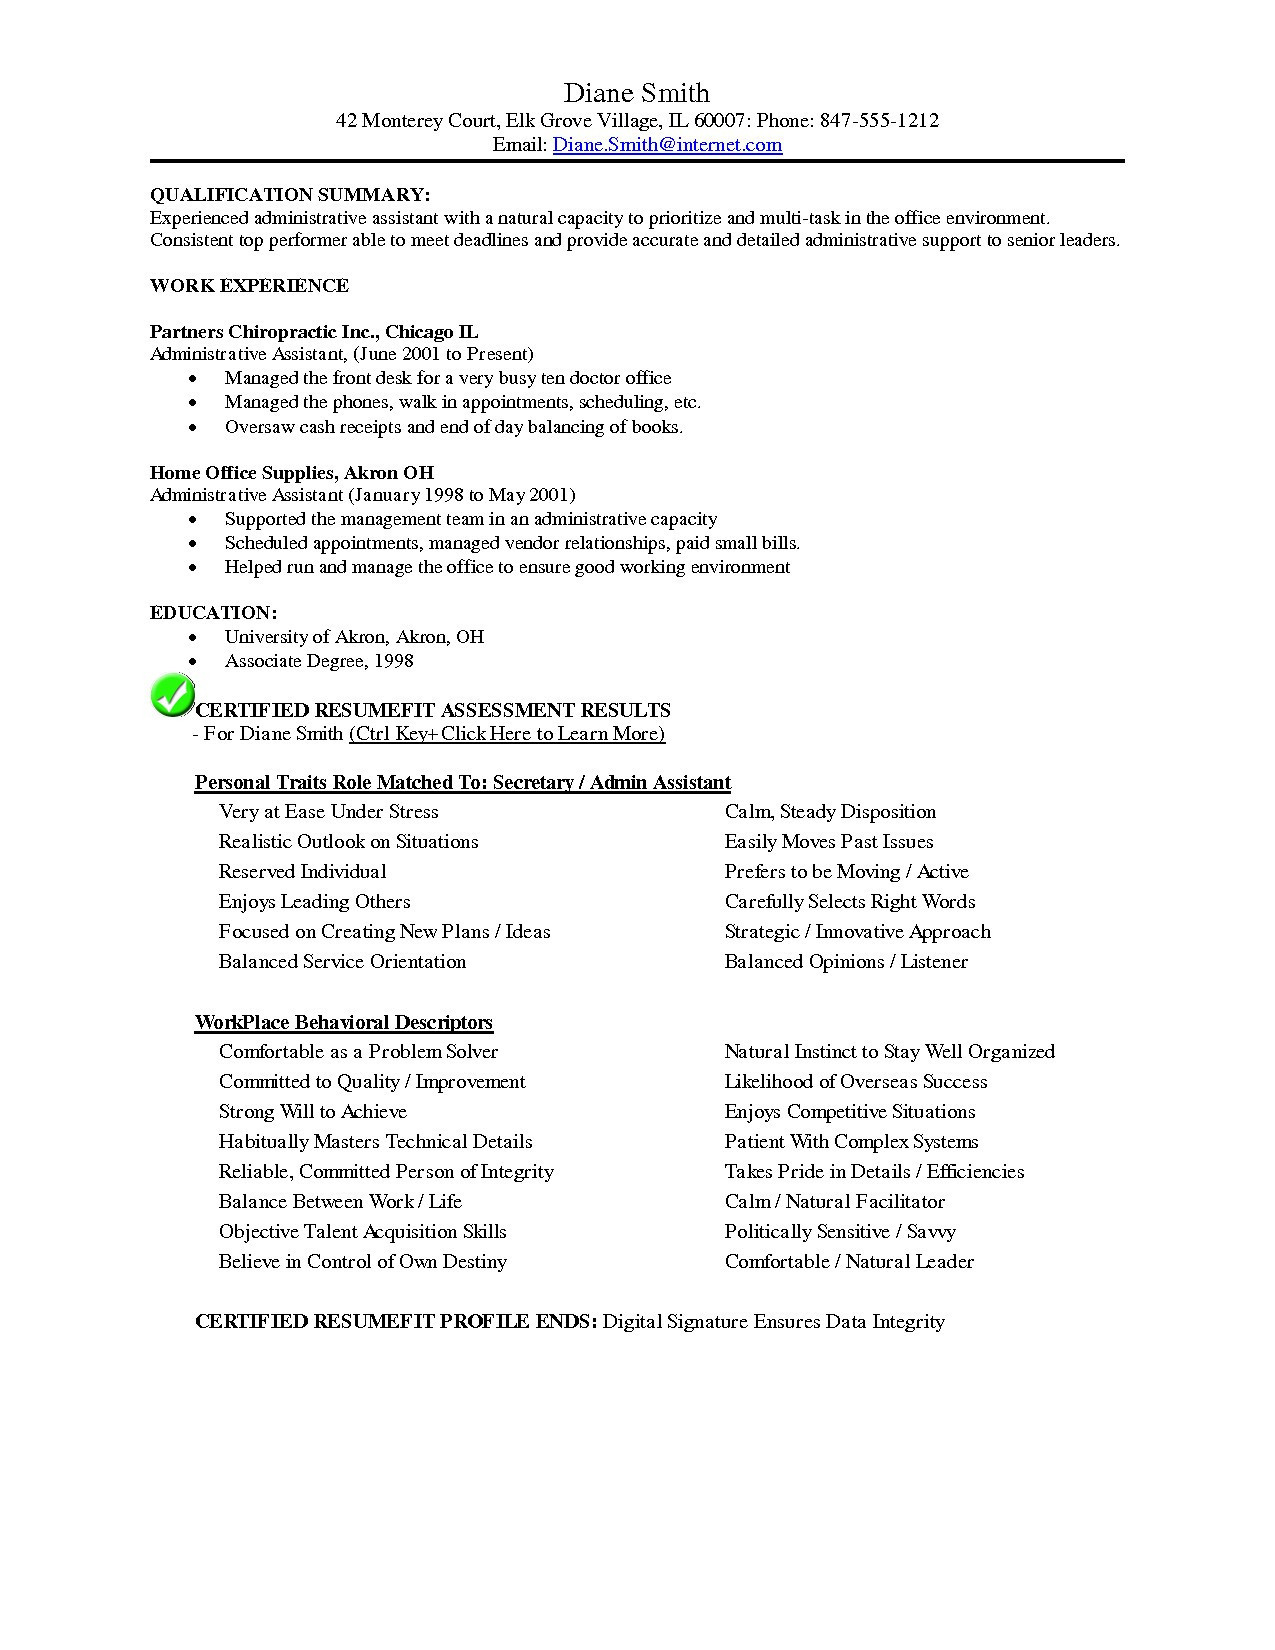 certified medical assistant resume template example-Free Administrative Assistant Resume Templates Updated Unique Pr Resume Template Elegant Dictionary Template 0d Archives 7-l